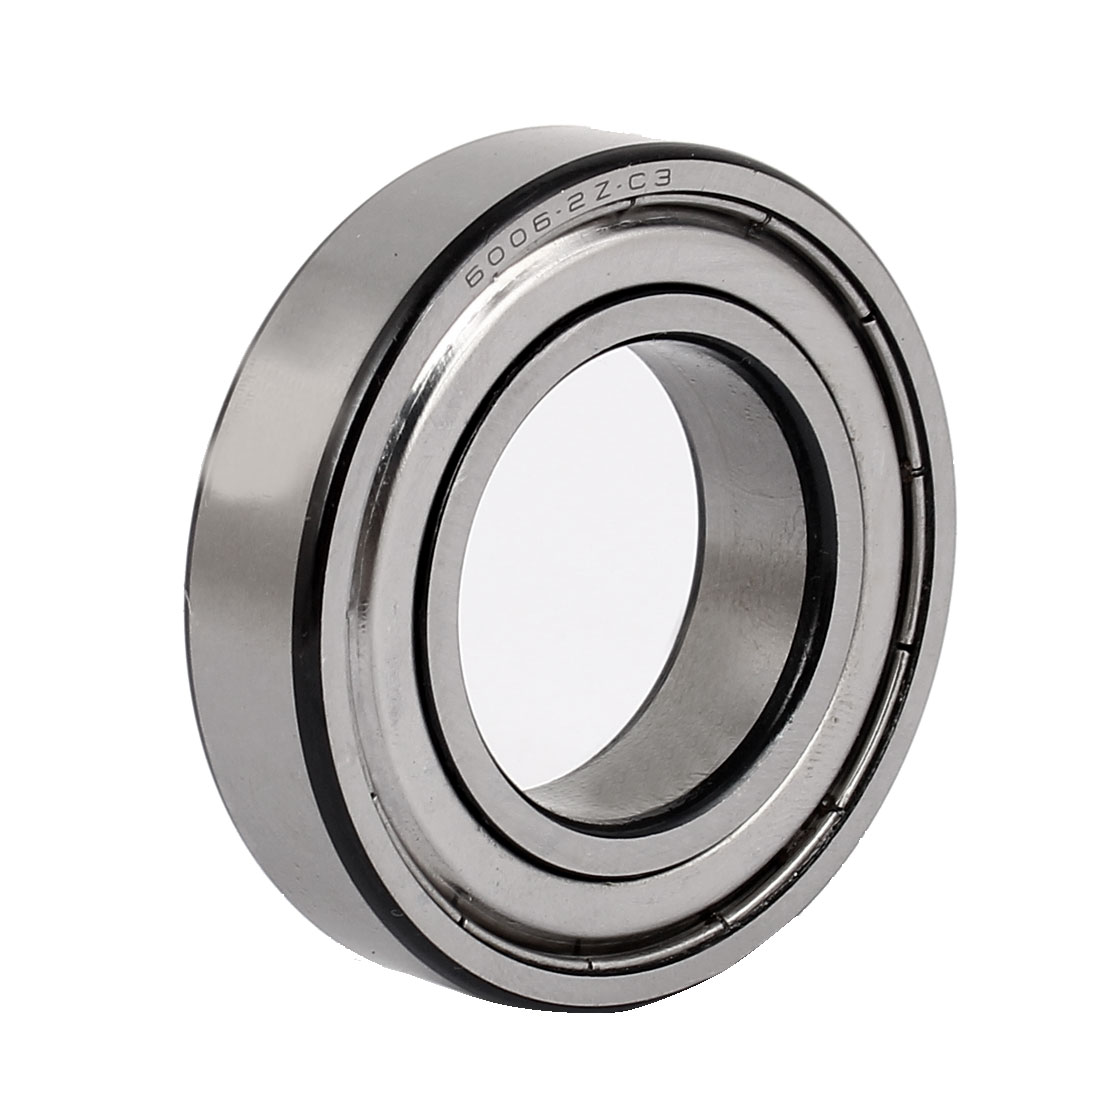 ZZ6006 55mm x 30mm x 13mm Pressed Steel Cage Sealed Deep Groove Ball Bearing